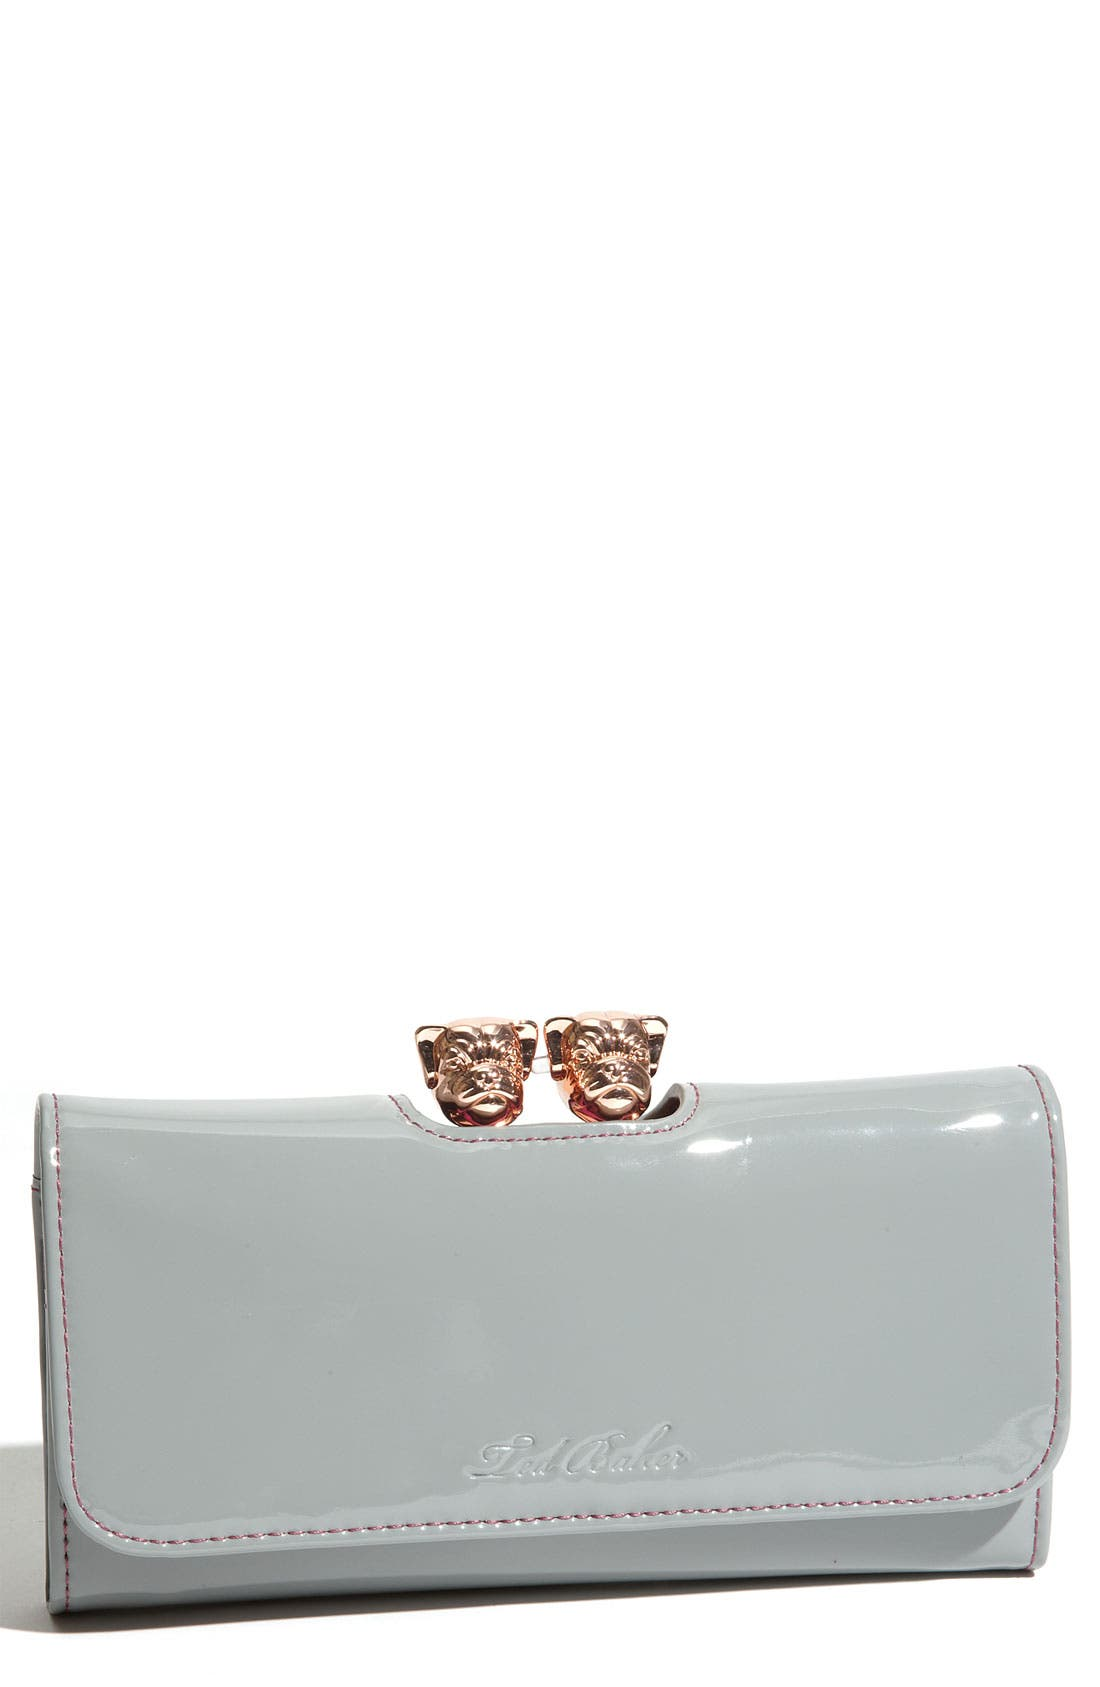 Alternate Image 1 Selected - Ted Baker London 'Roverz Bobble' Matinee Wallet